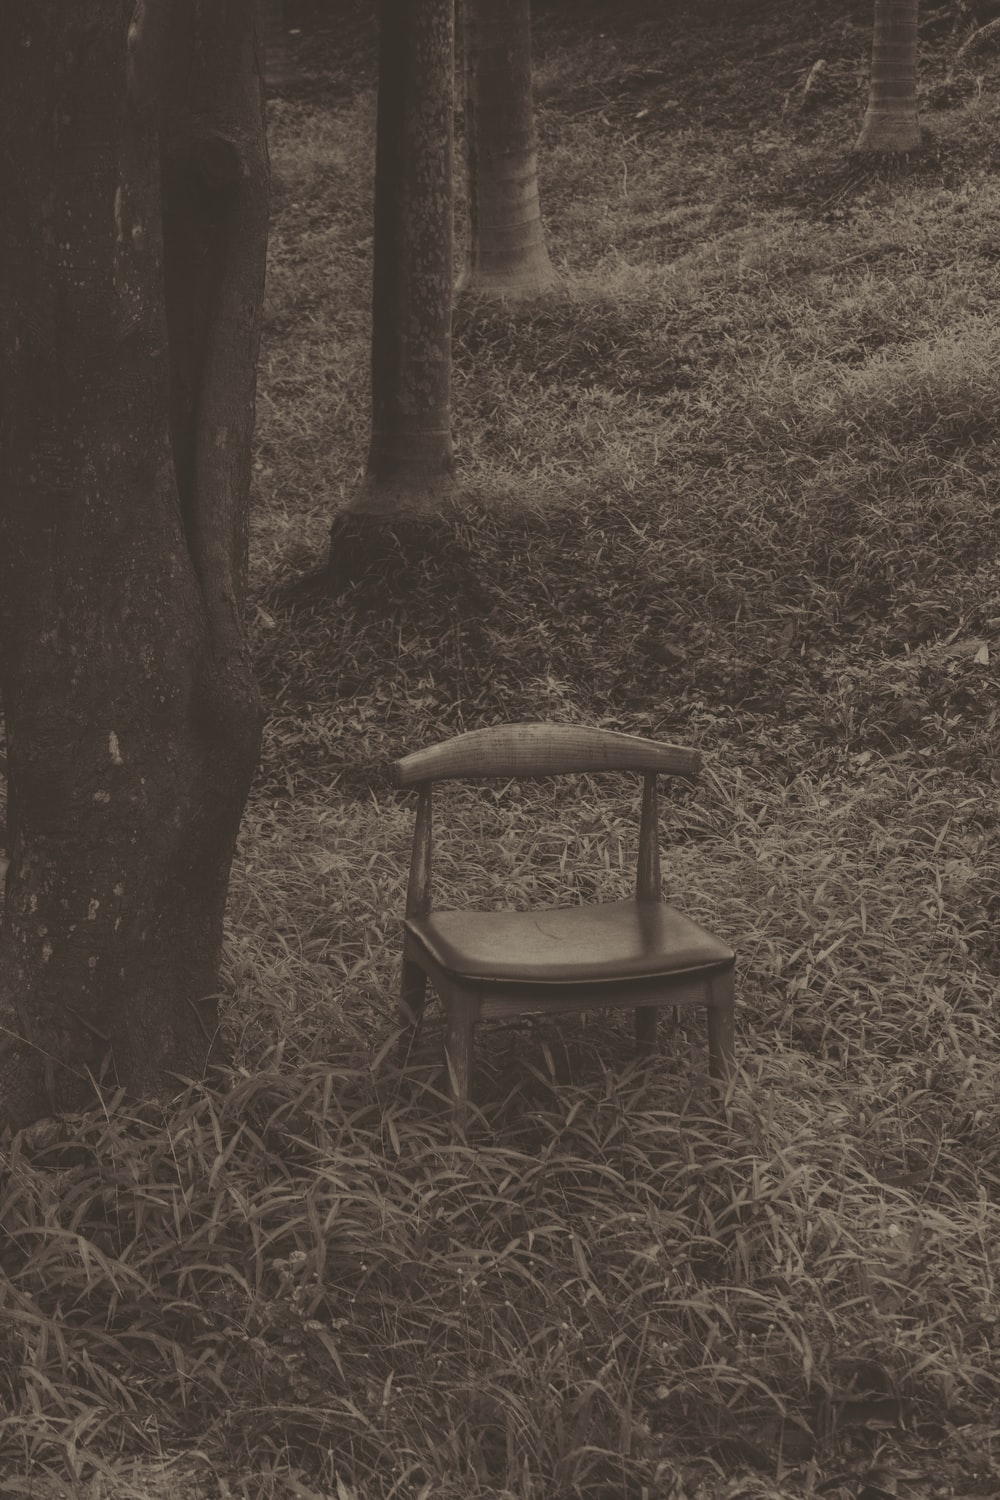 grayscale photo of chair near tree